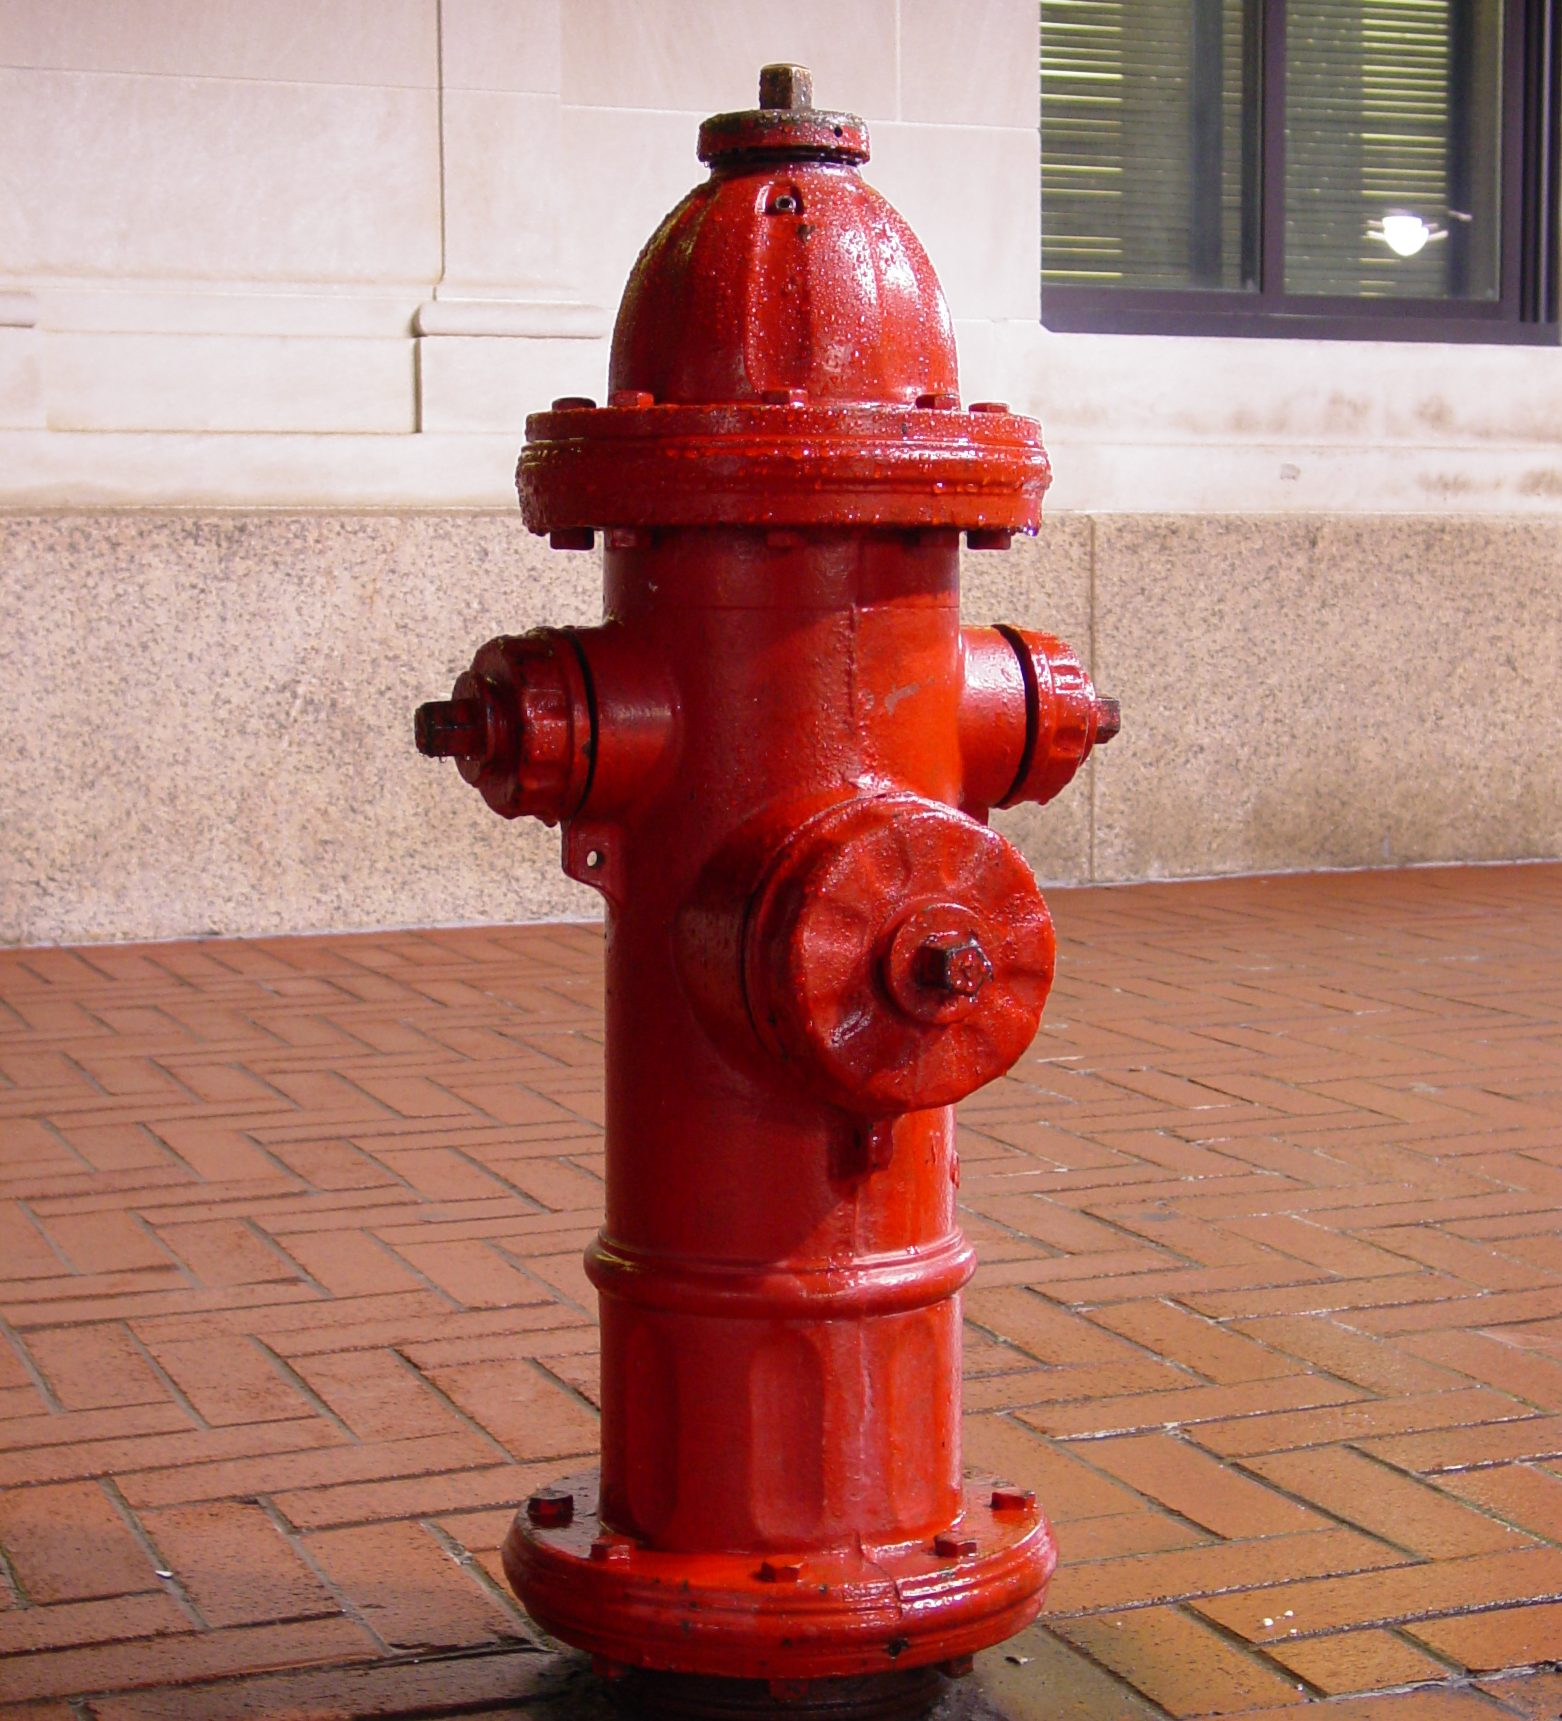 photo of fire hydrant